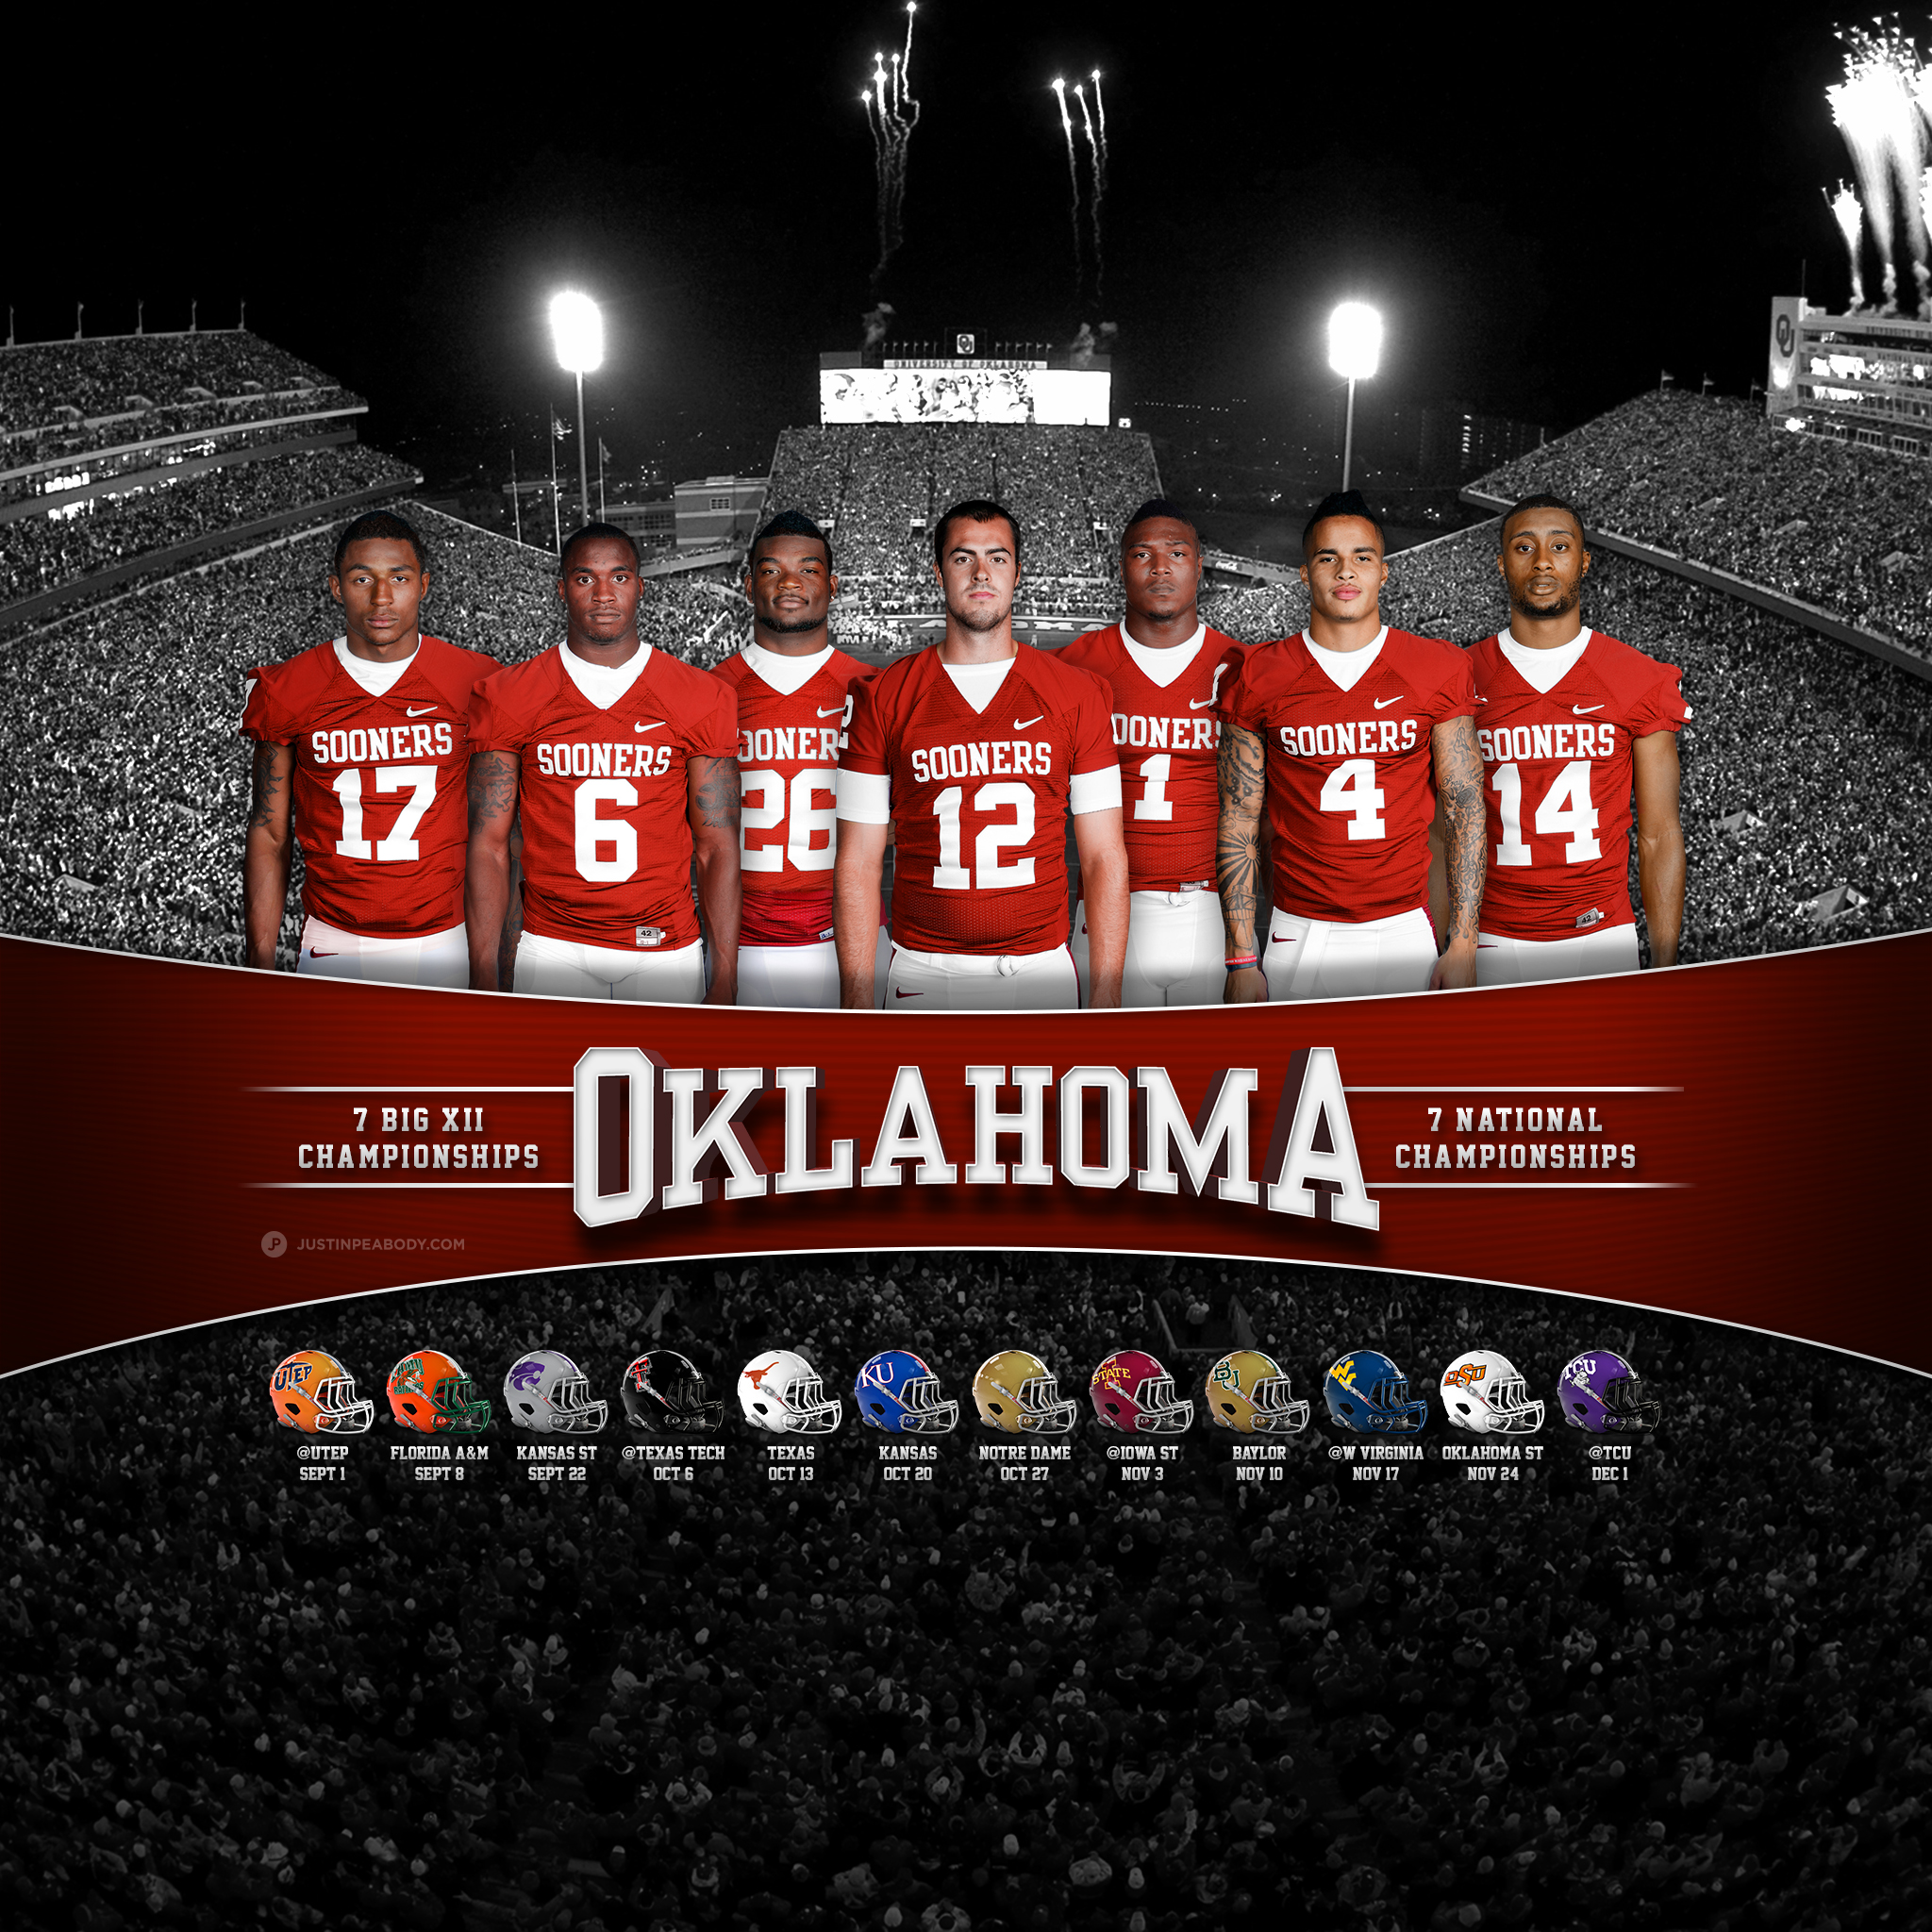 Download image Oklahoma Ou Sooners Football Wallpaper PC Android 2048x2048